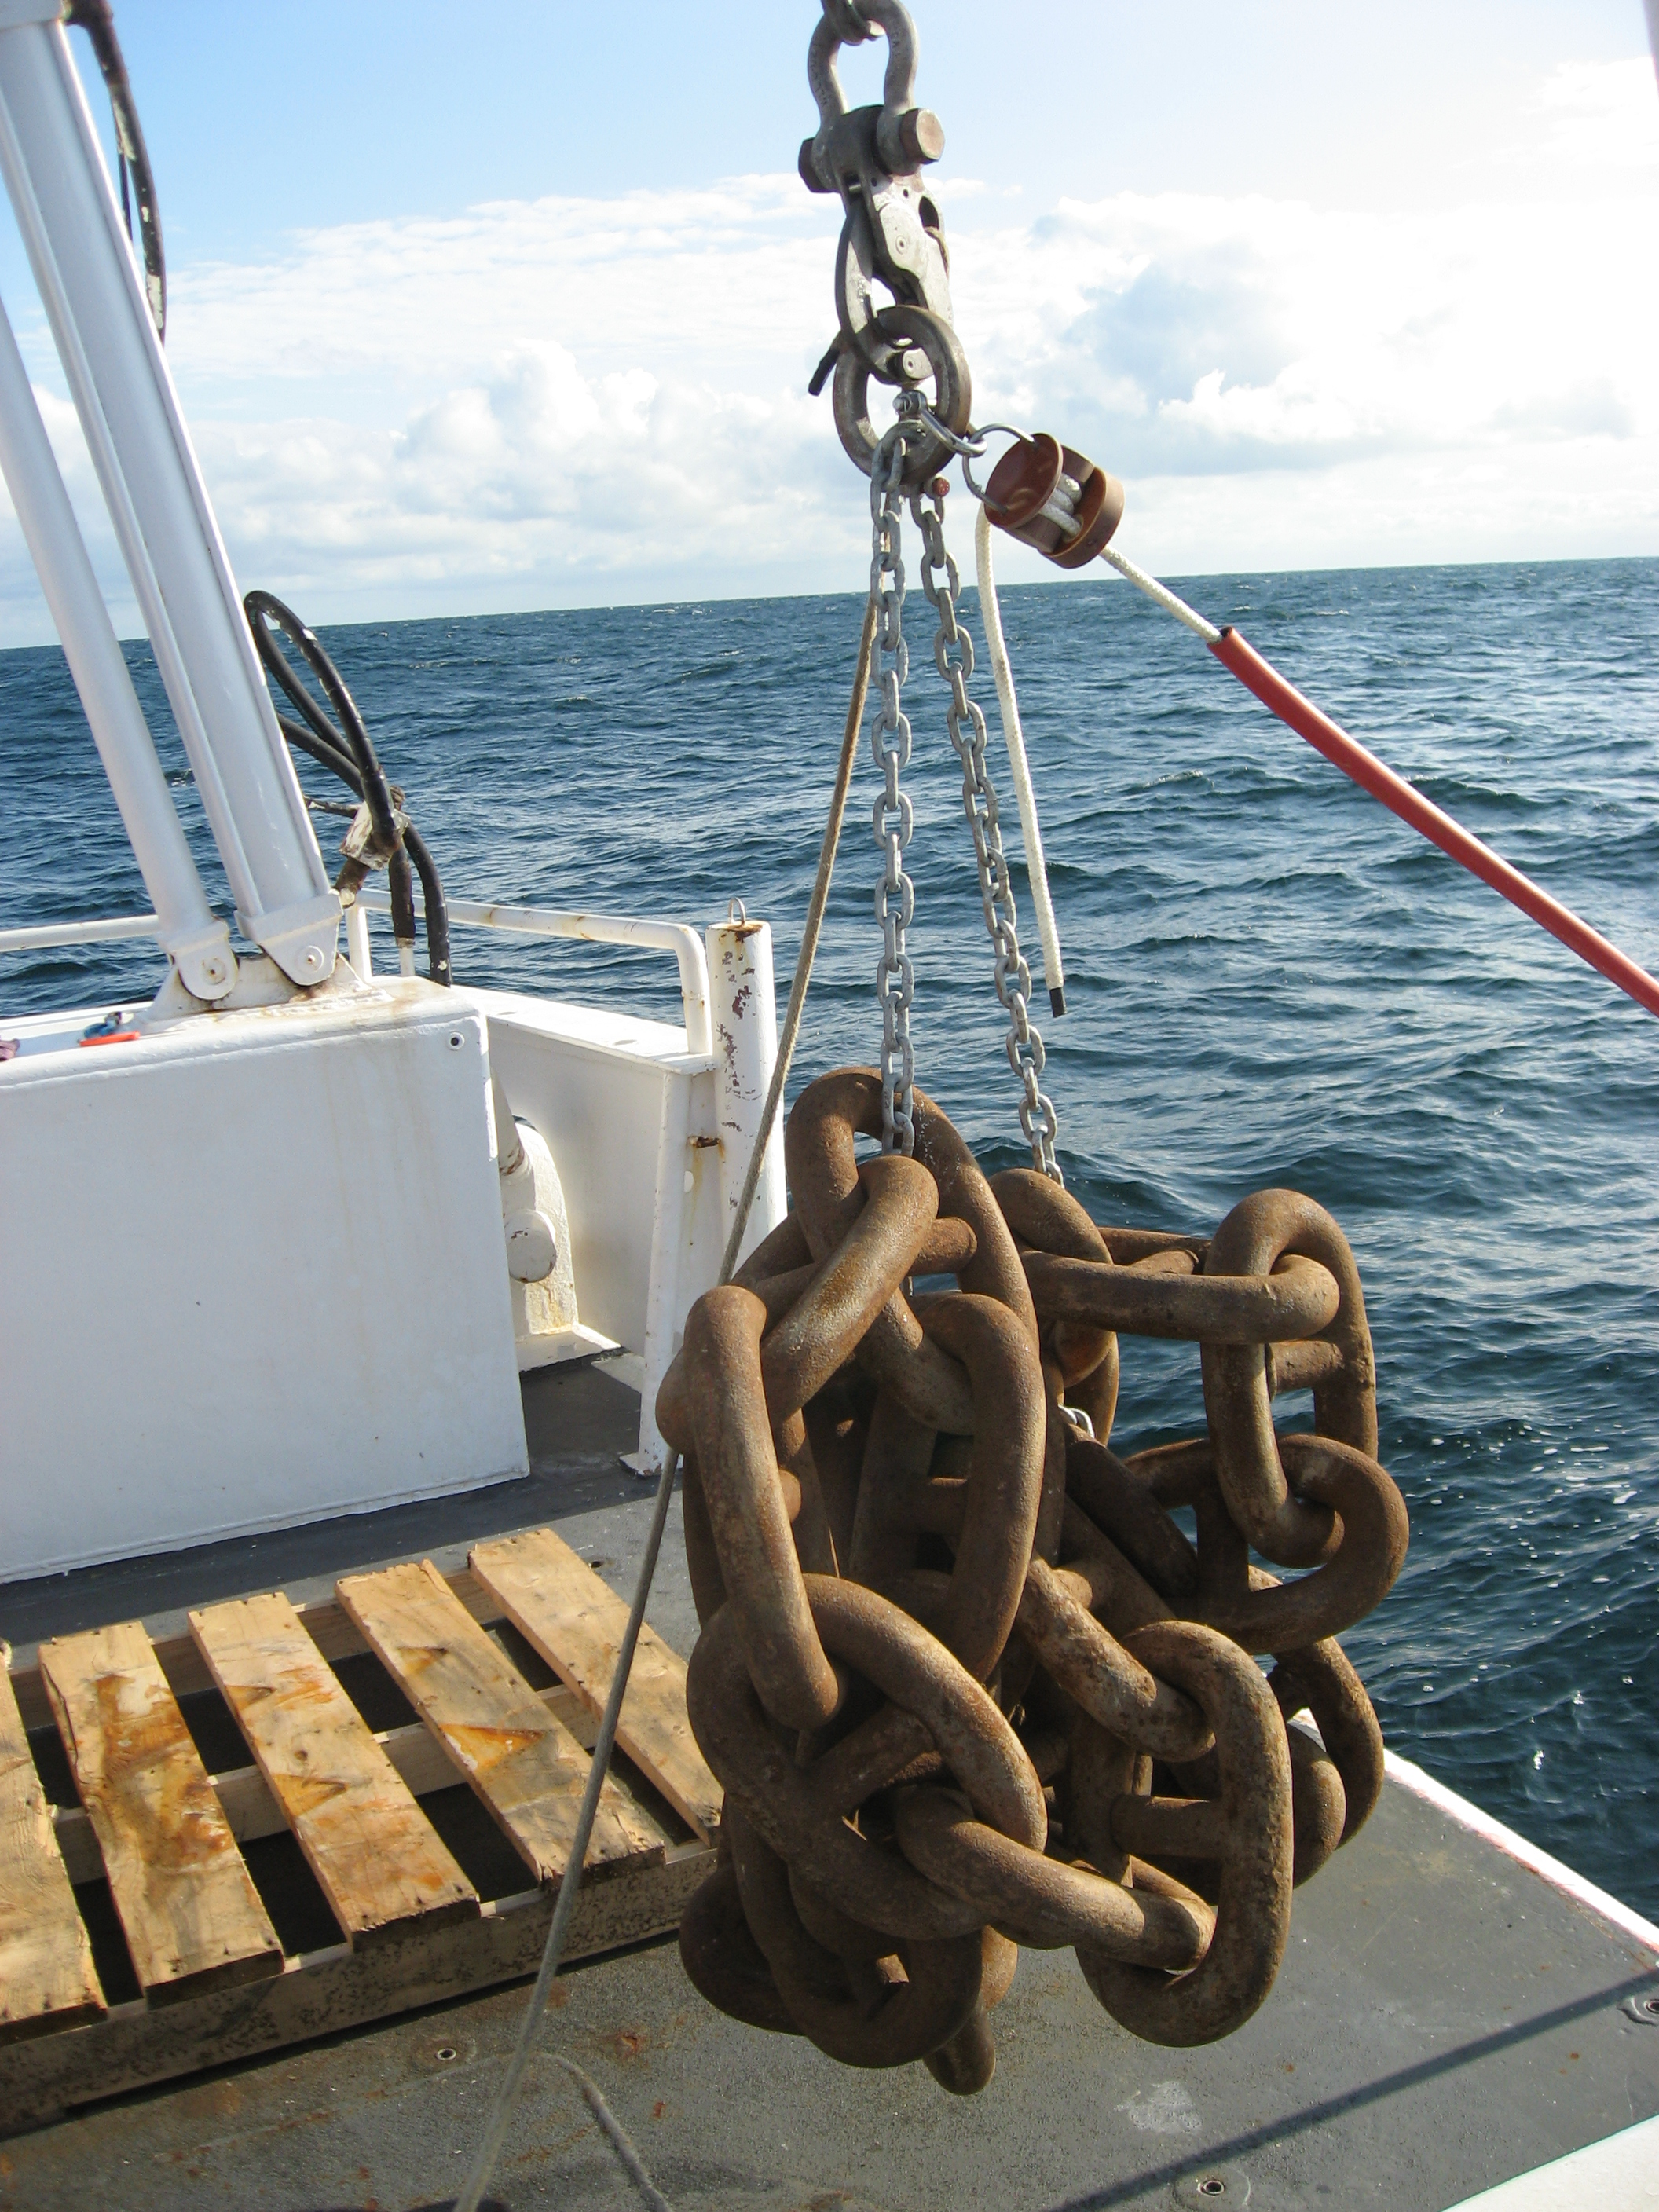 Anchor chain ready to be dropped